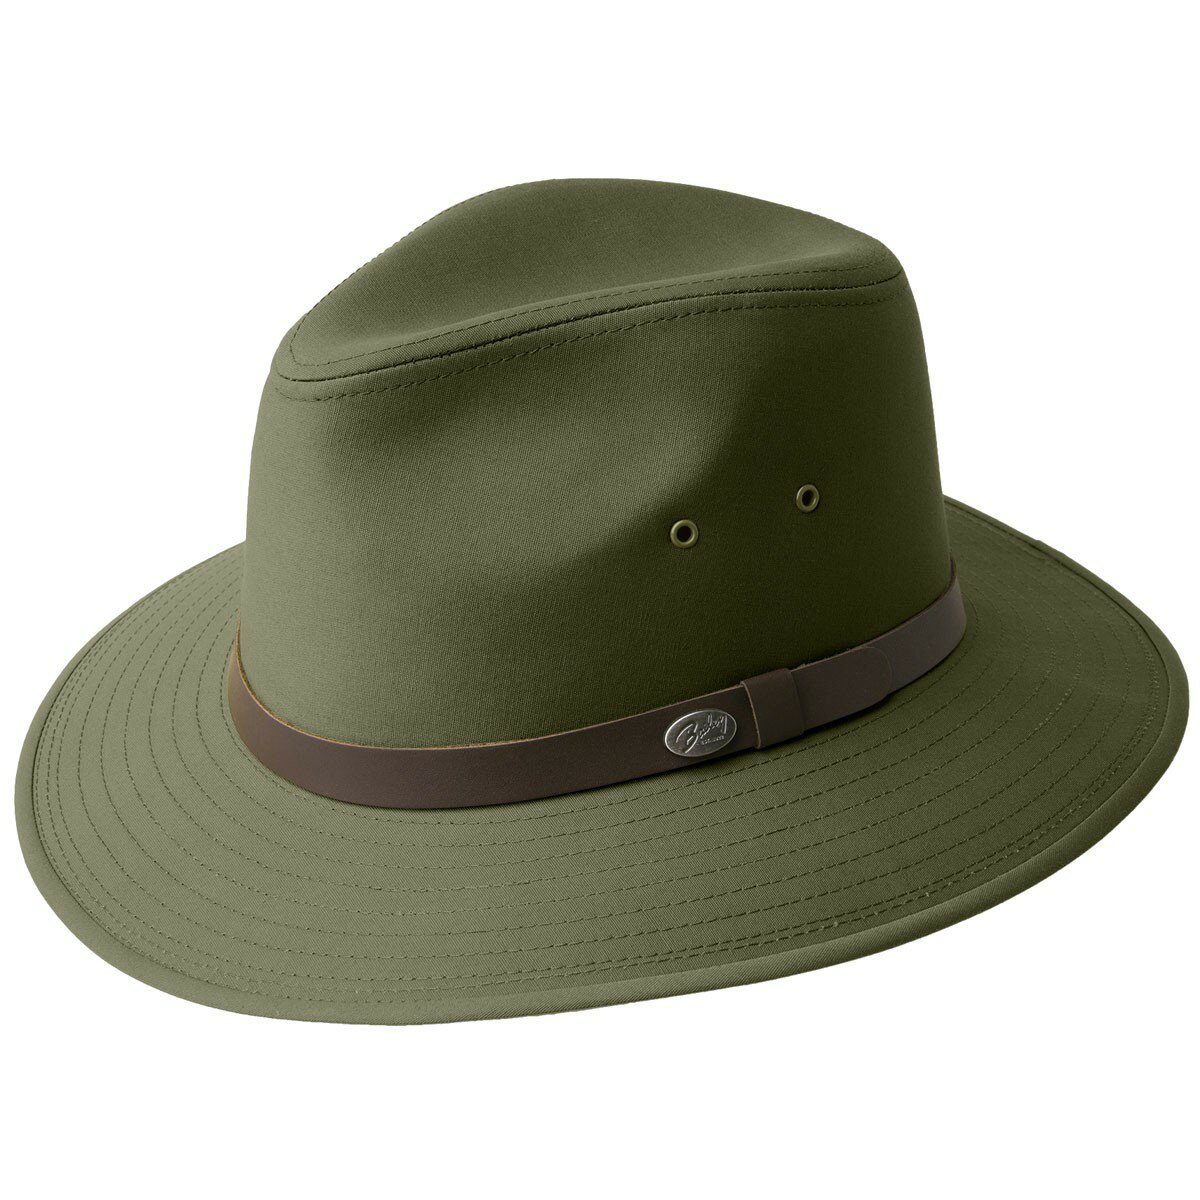 Bailey of Hollywood Dalton Safari Outback Olive アウトバックハット 帽子 Olive